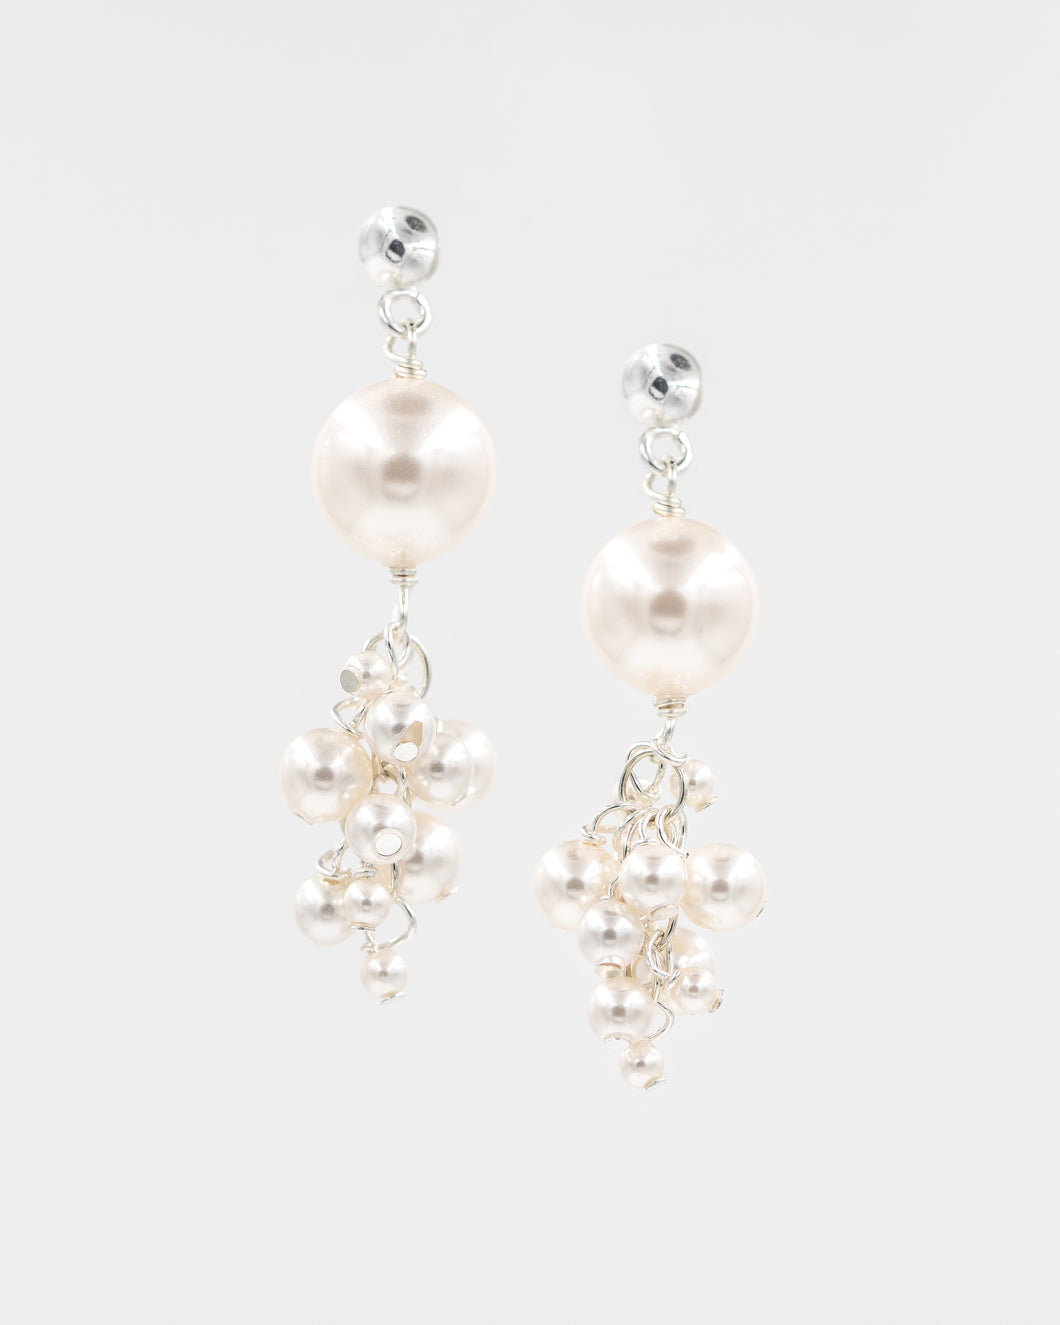 Picture of earrings with clustered Swarovski pearls in white